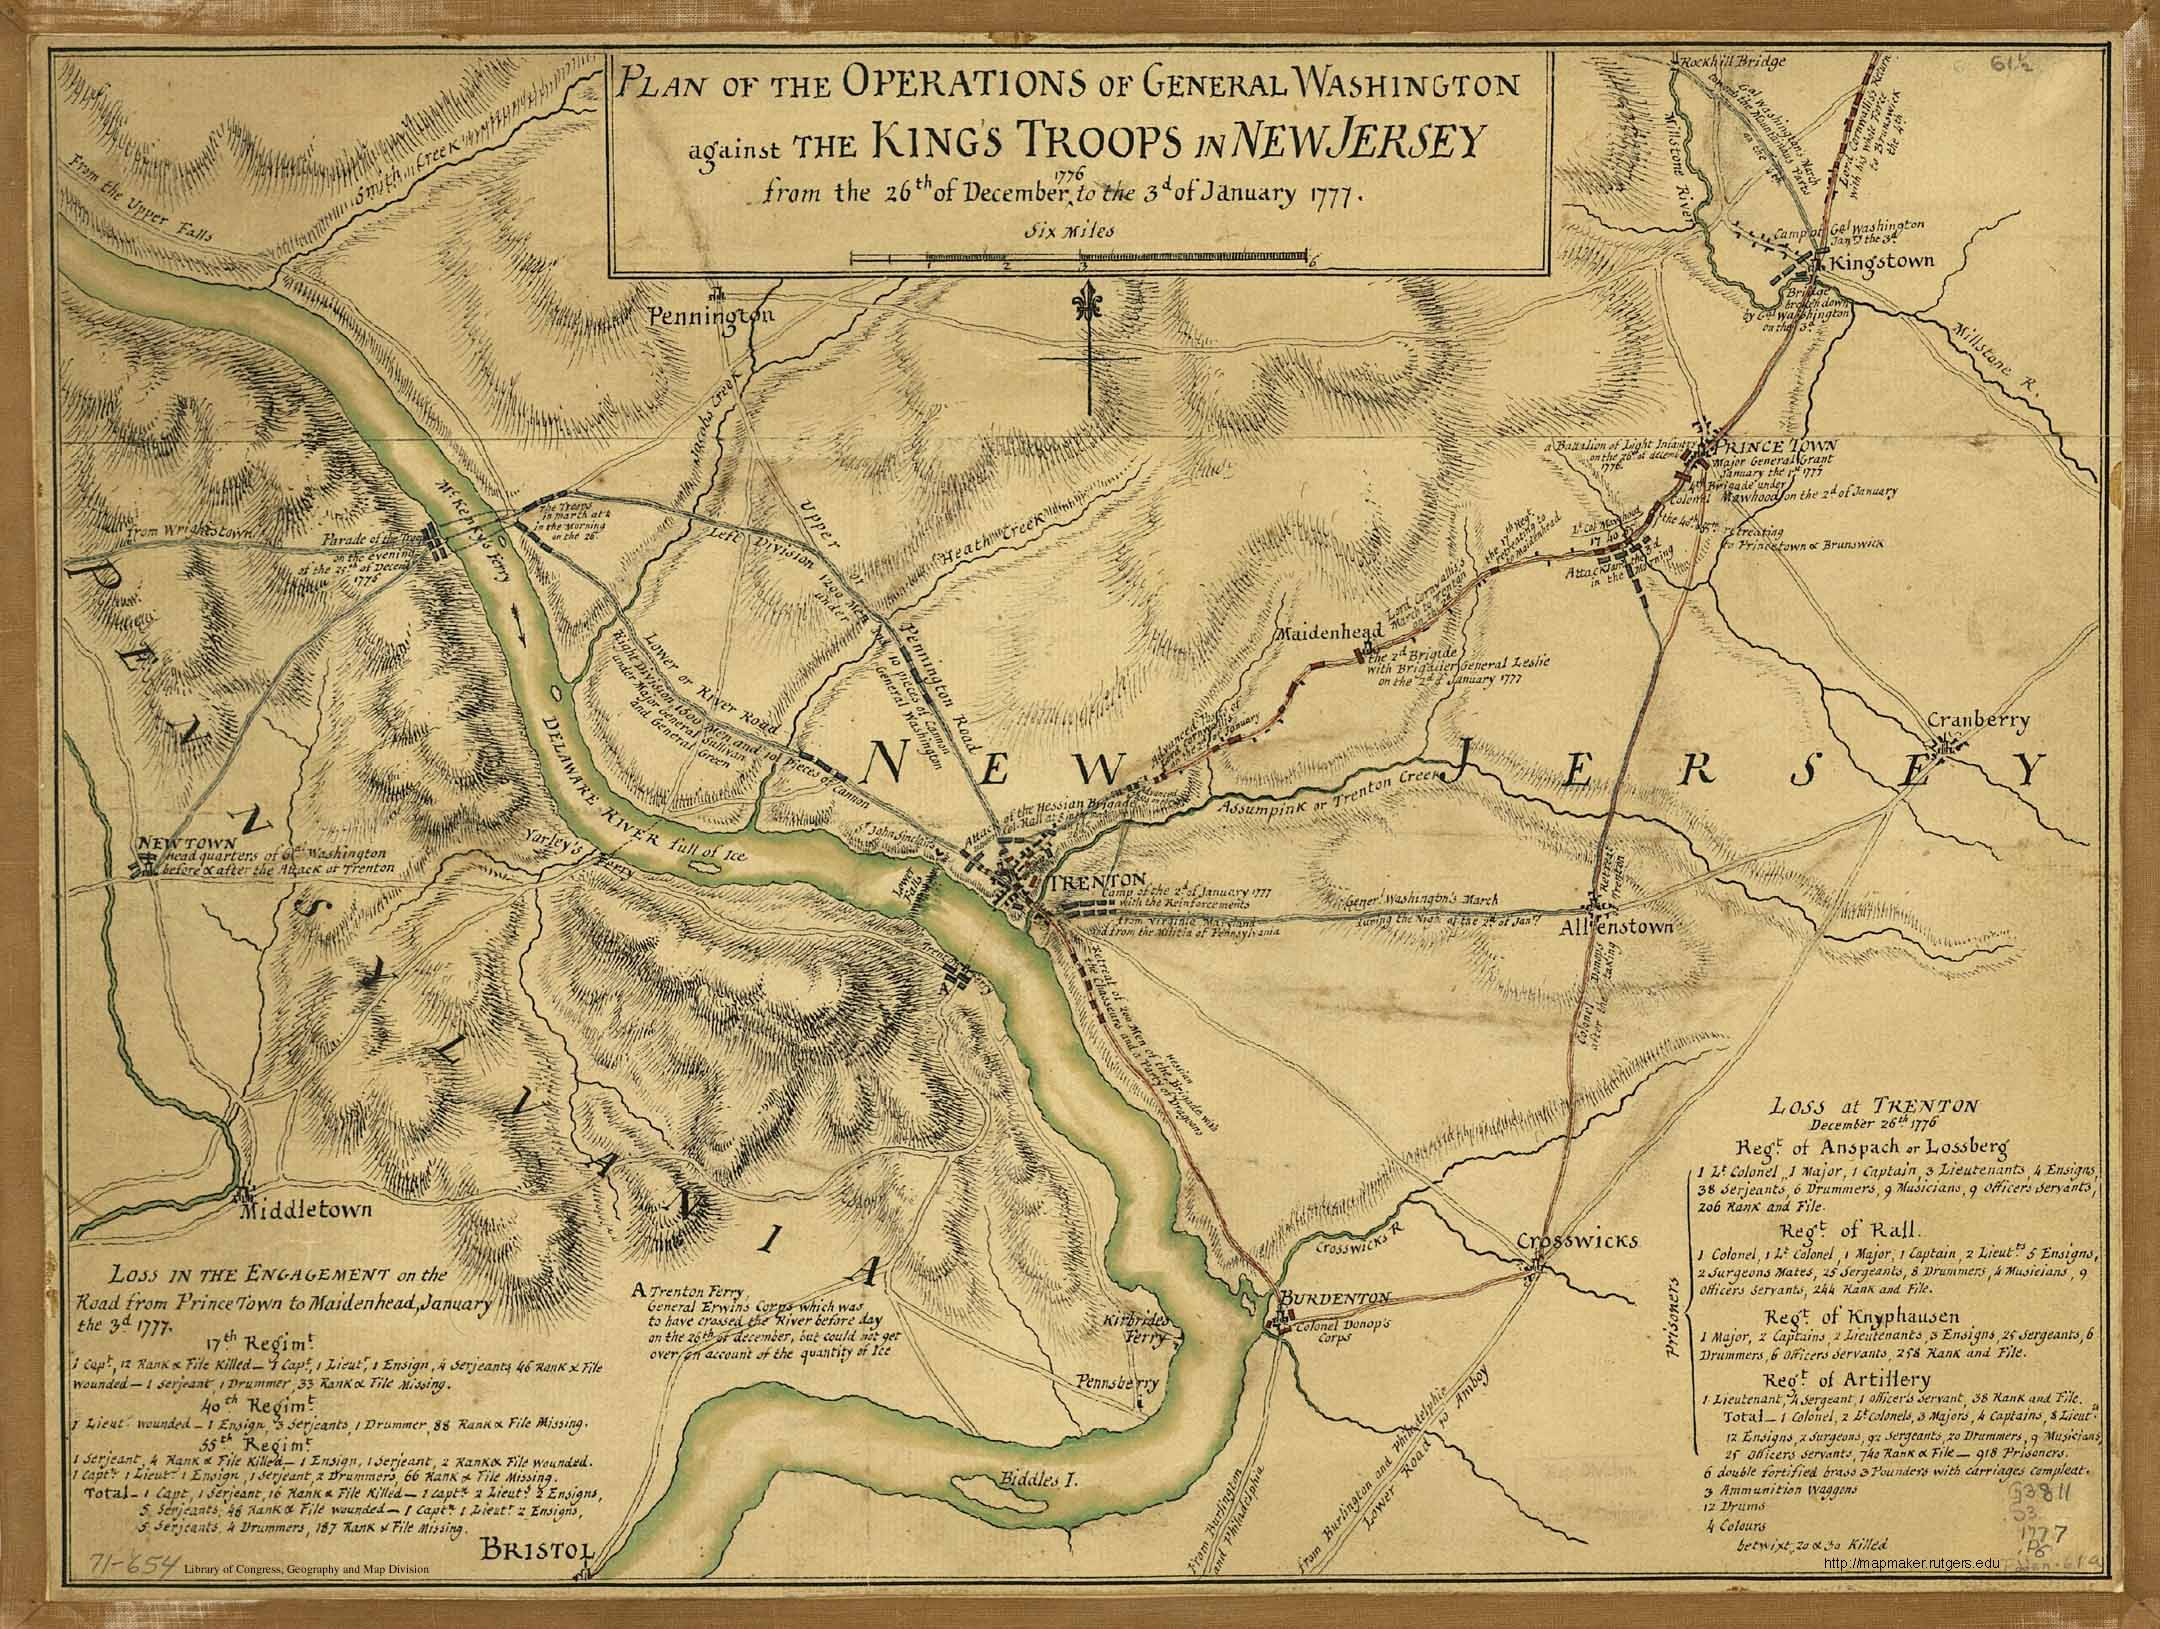 Historical New Jersey Revolutionary War Maps